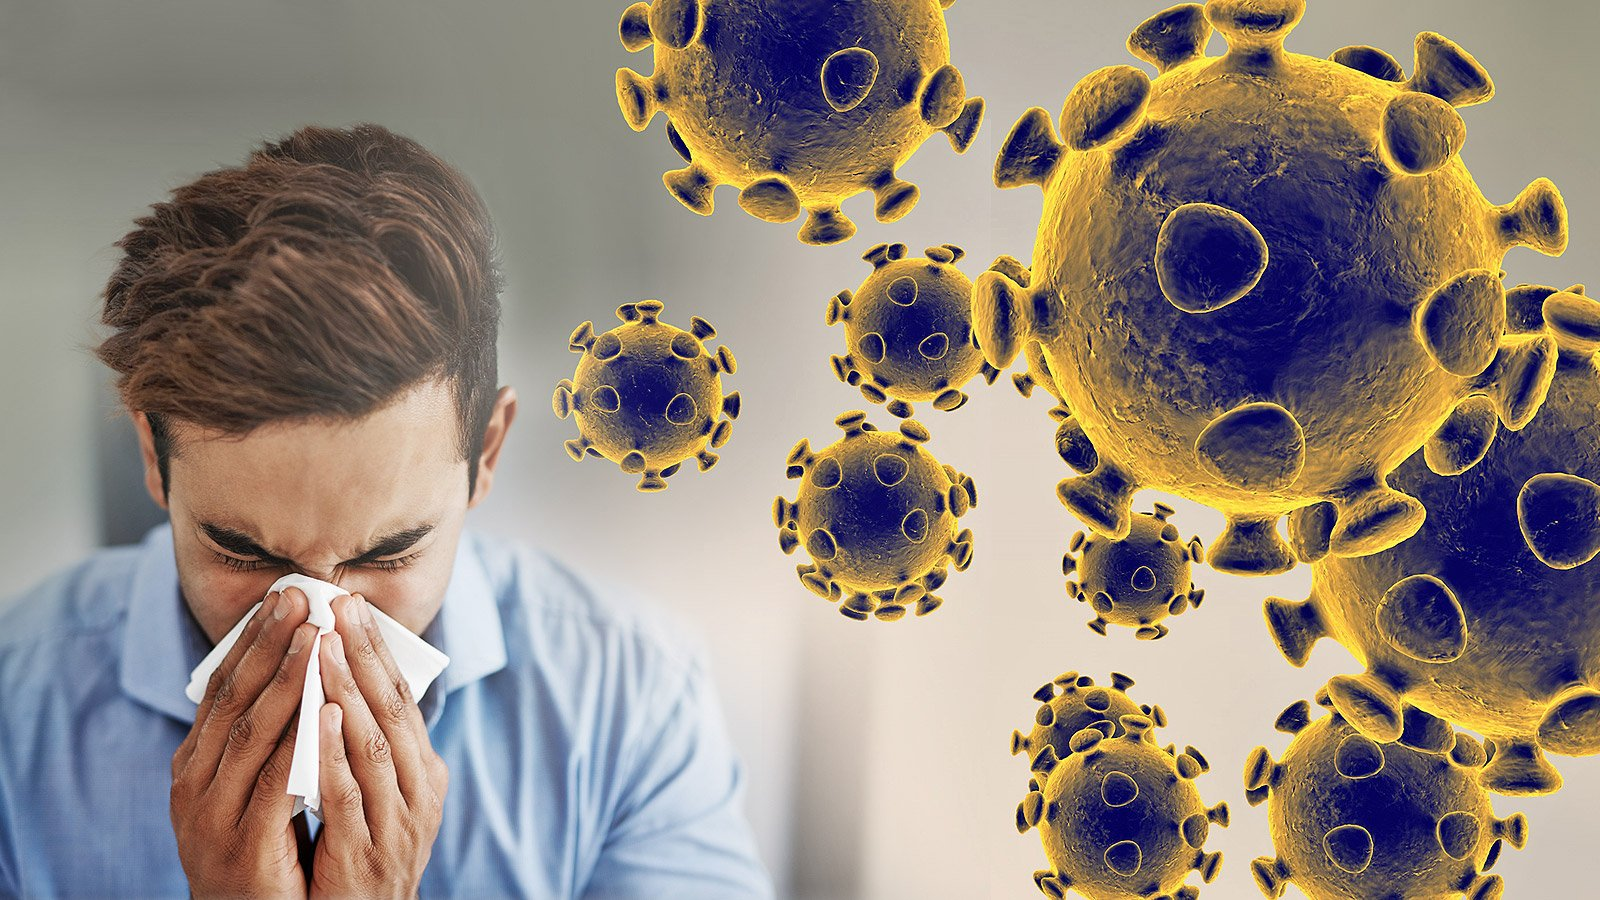 COVID-19: What you can do right now to stay safe {Corona Virus alert}